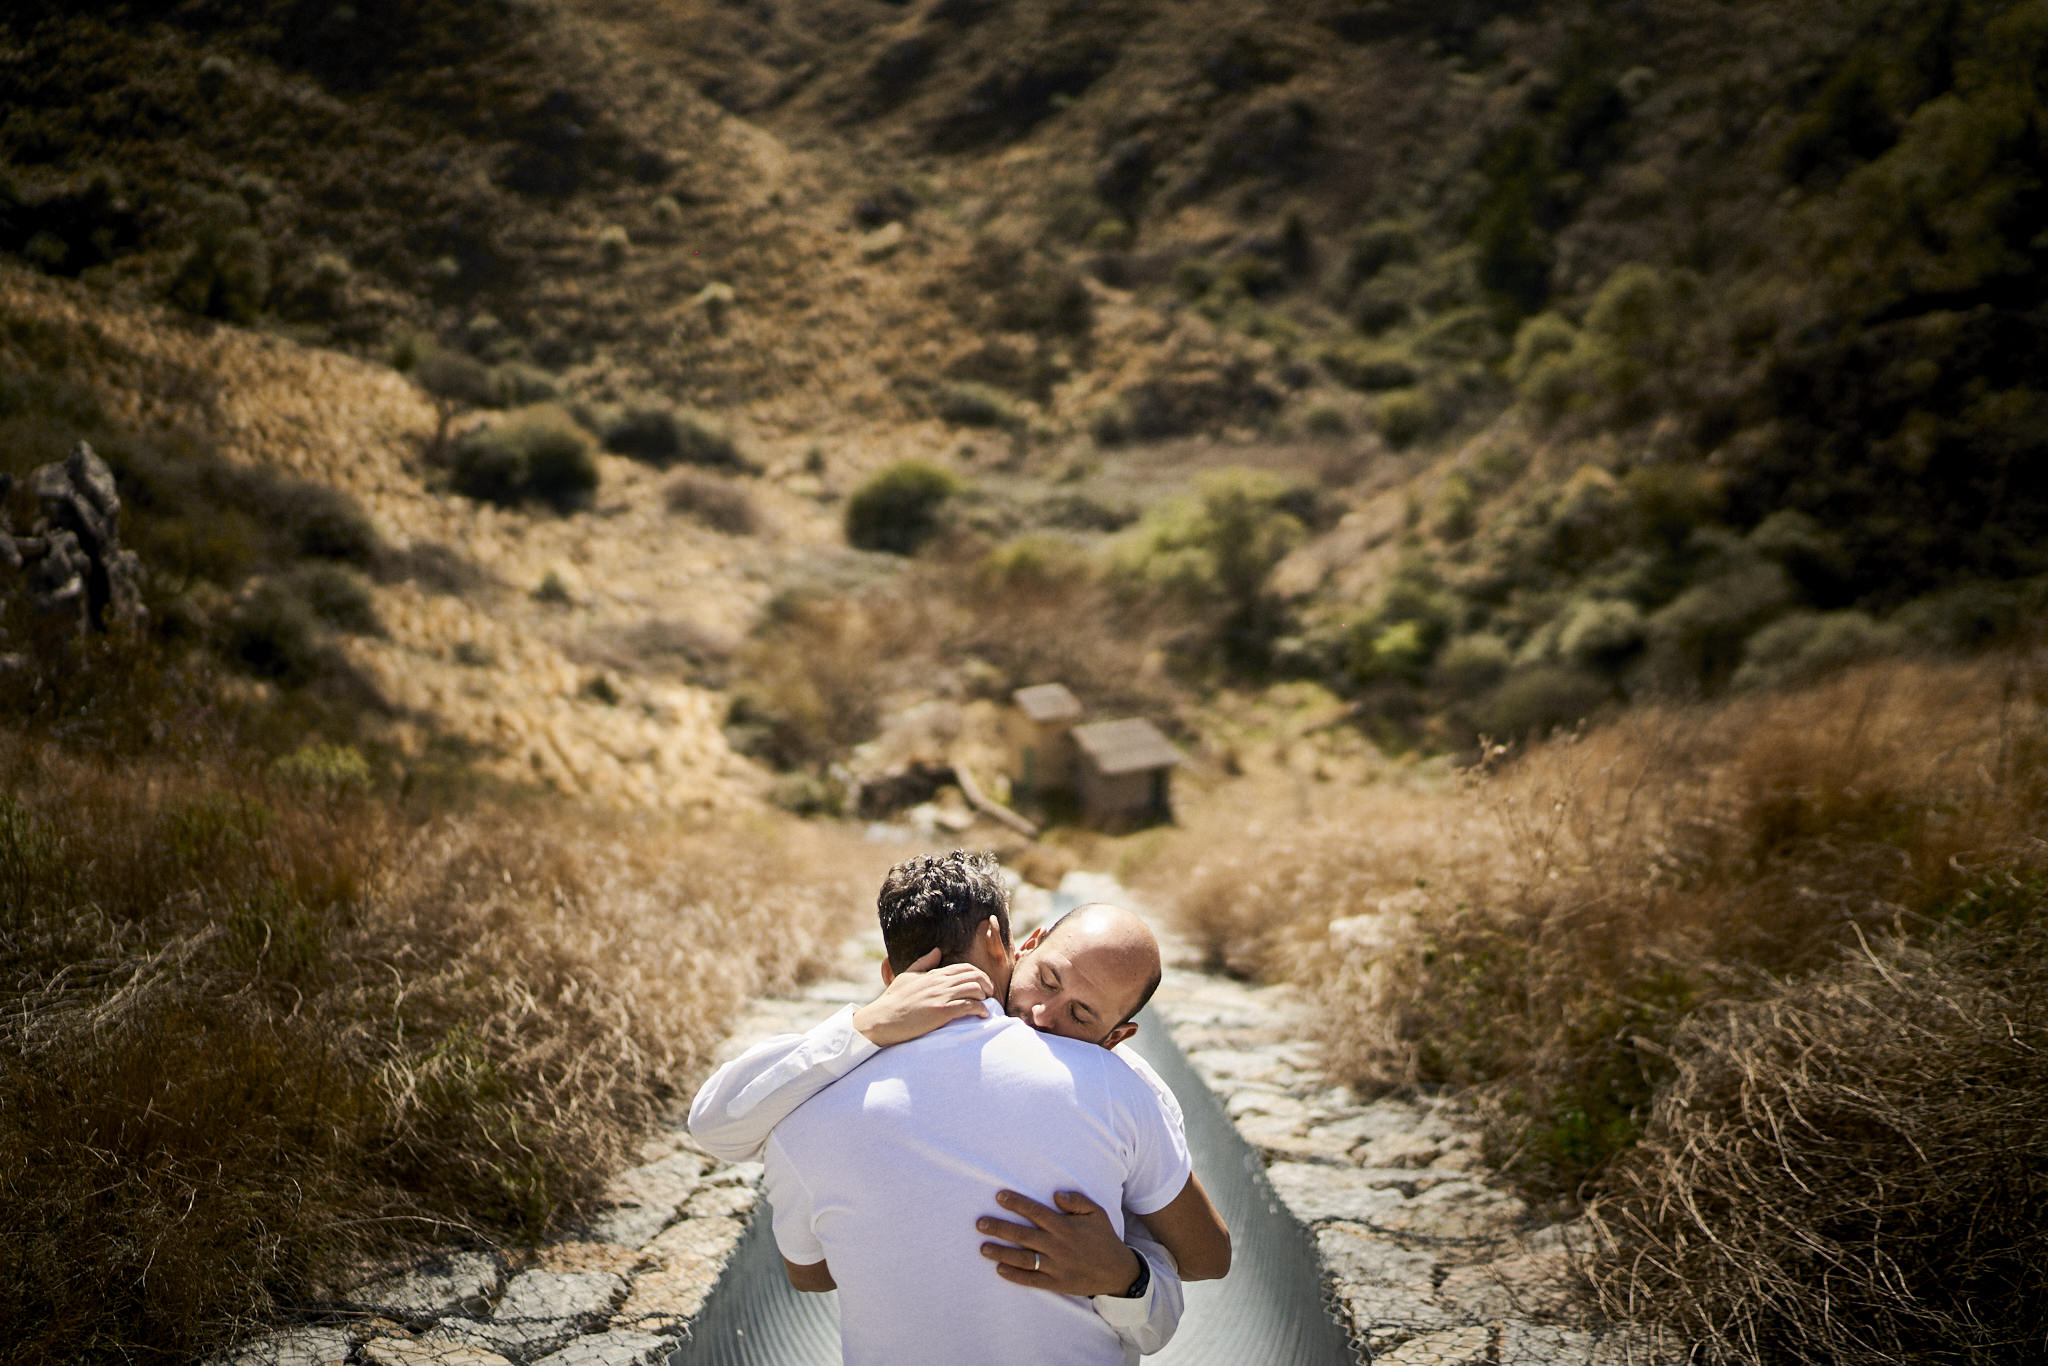 Fotografo de Bodas - Gay Couples - Wedding Photographer LME02295.jpg